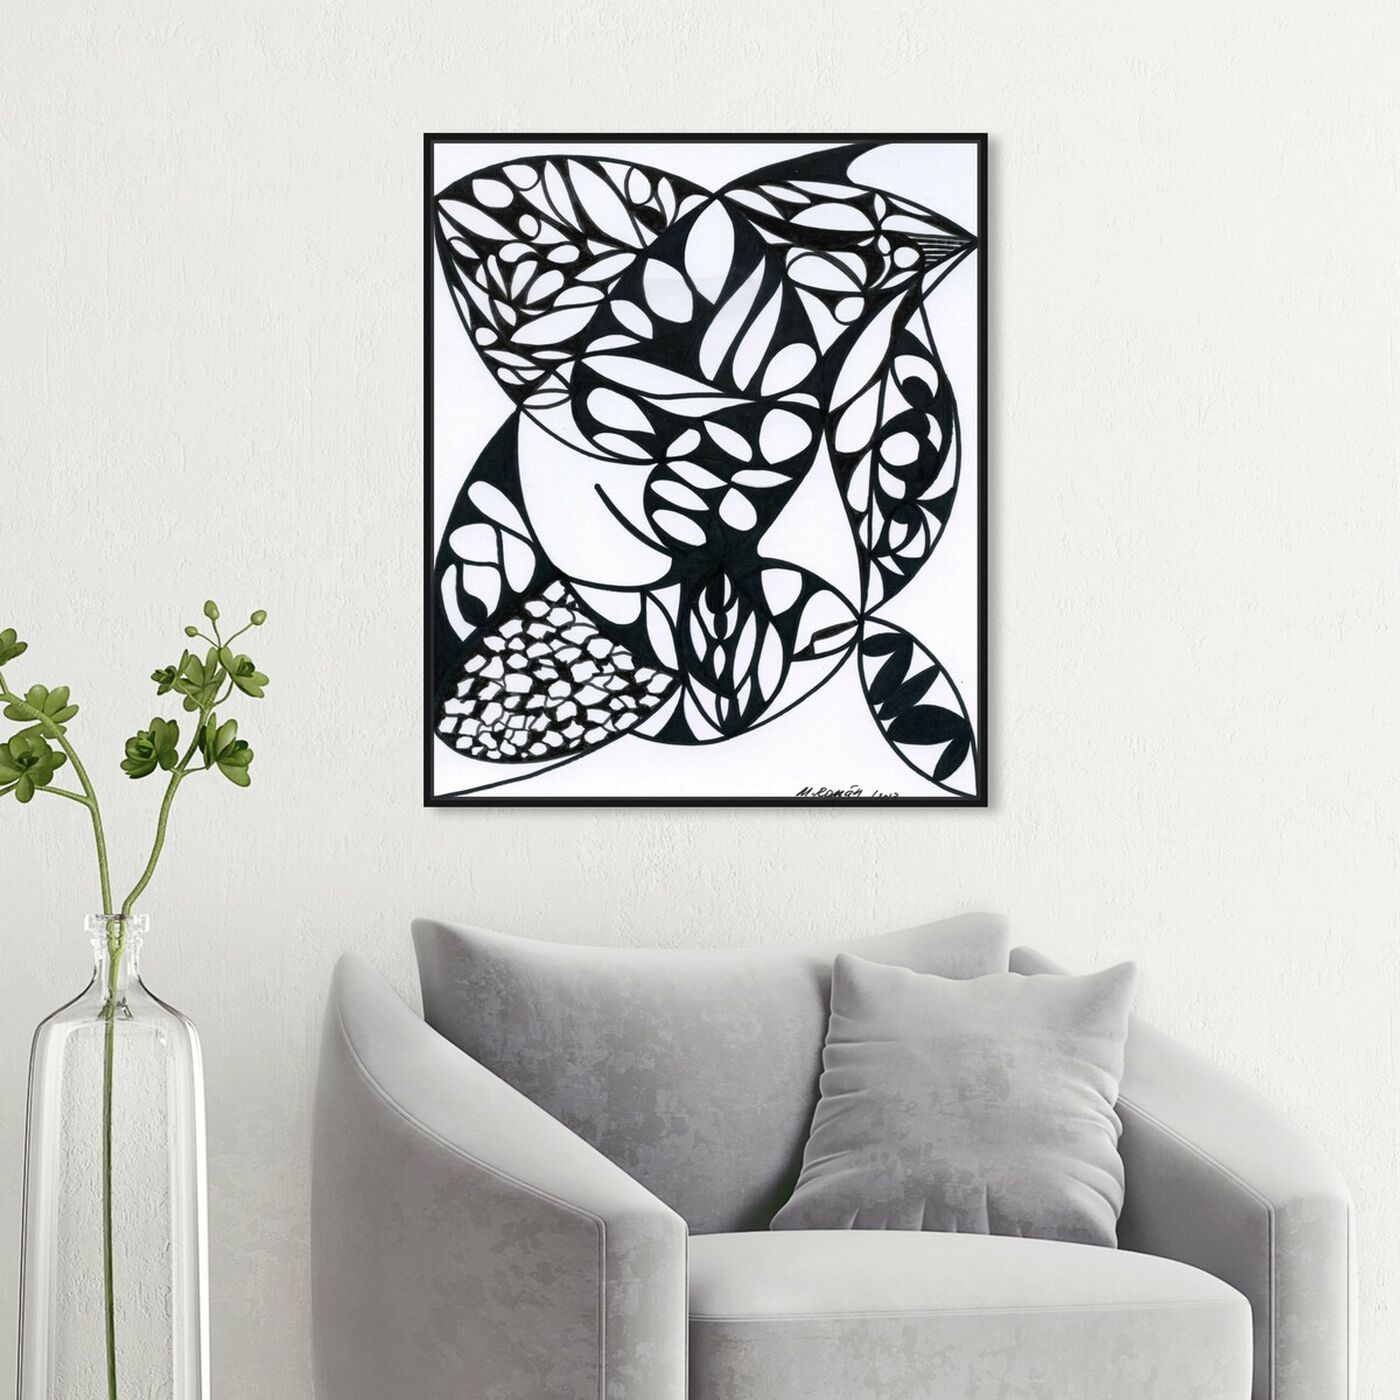 Hanging view of Nocturne featuring abstract and geometric art.